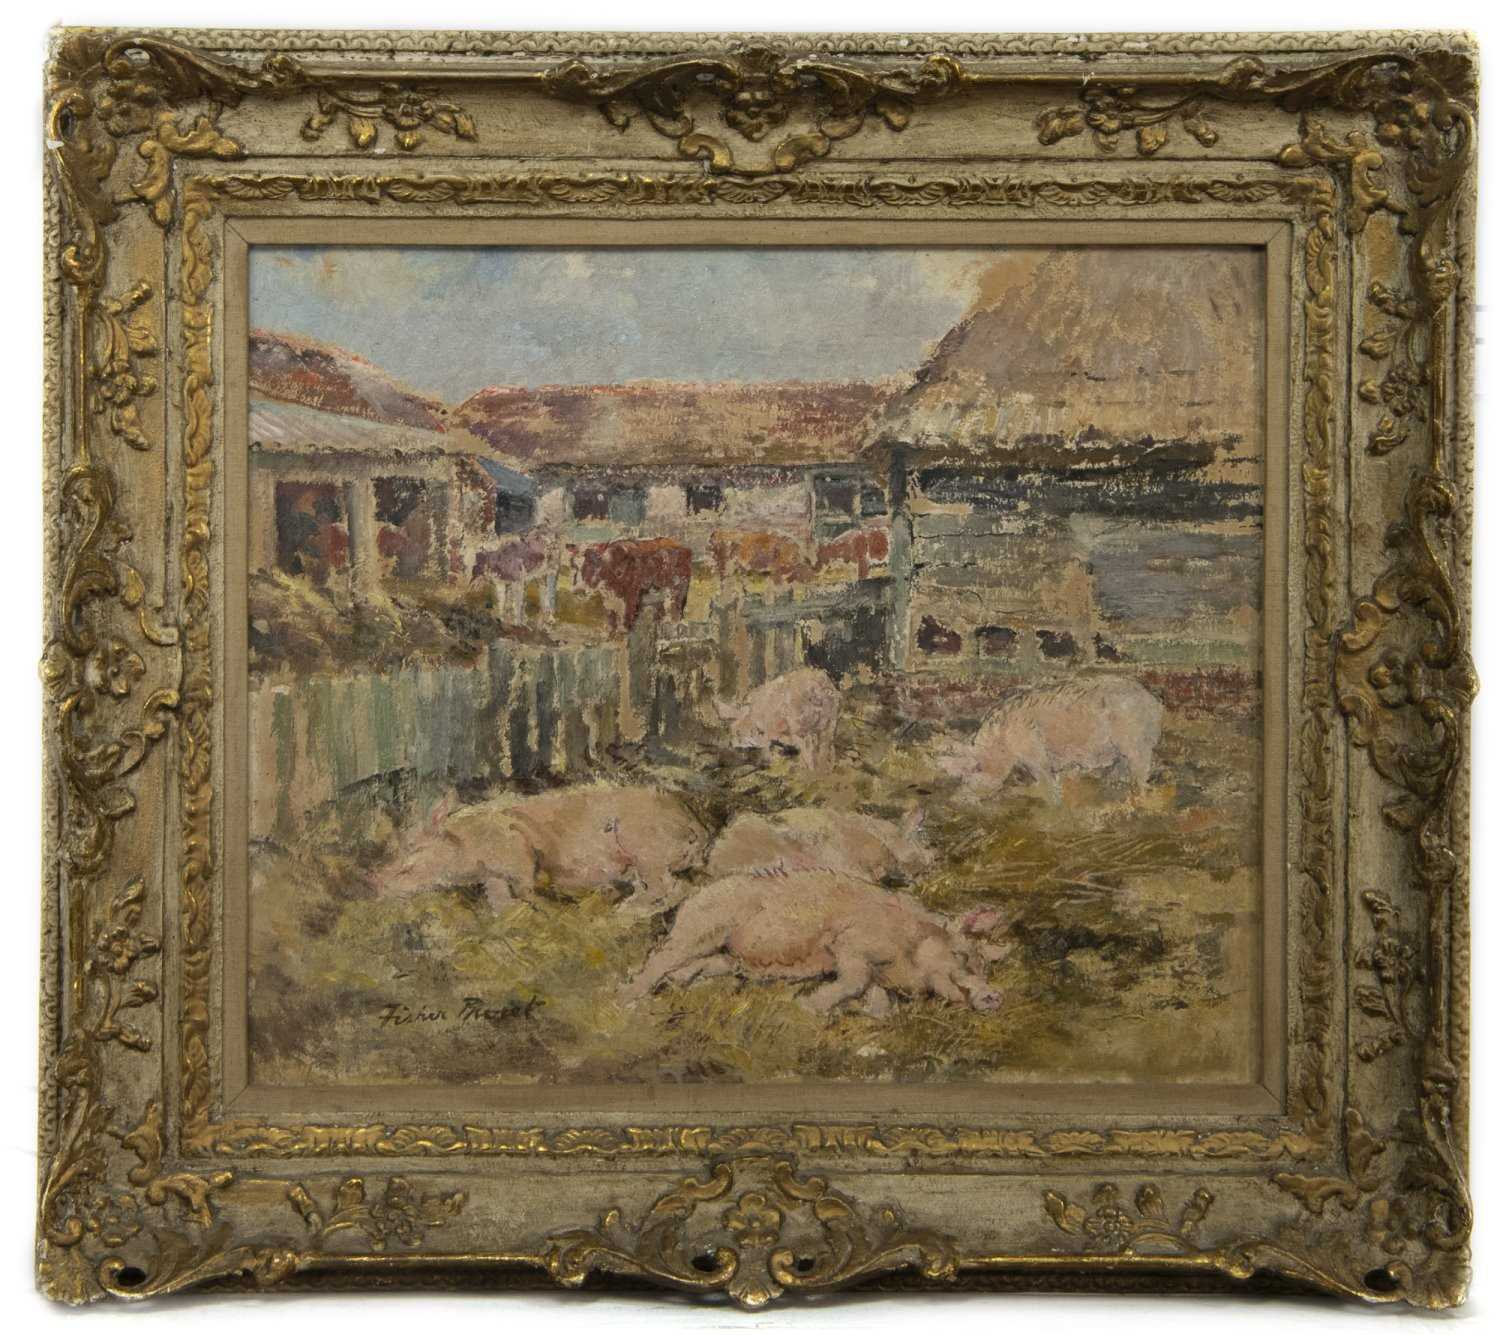 Lot 50 - SIESTA, AN OIL BY MARGARET FISHER PROUT